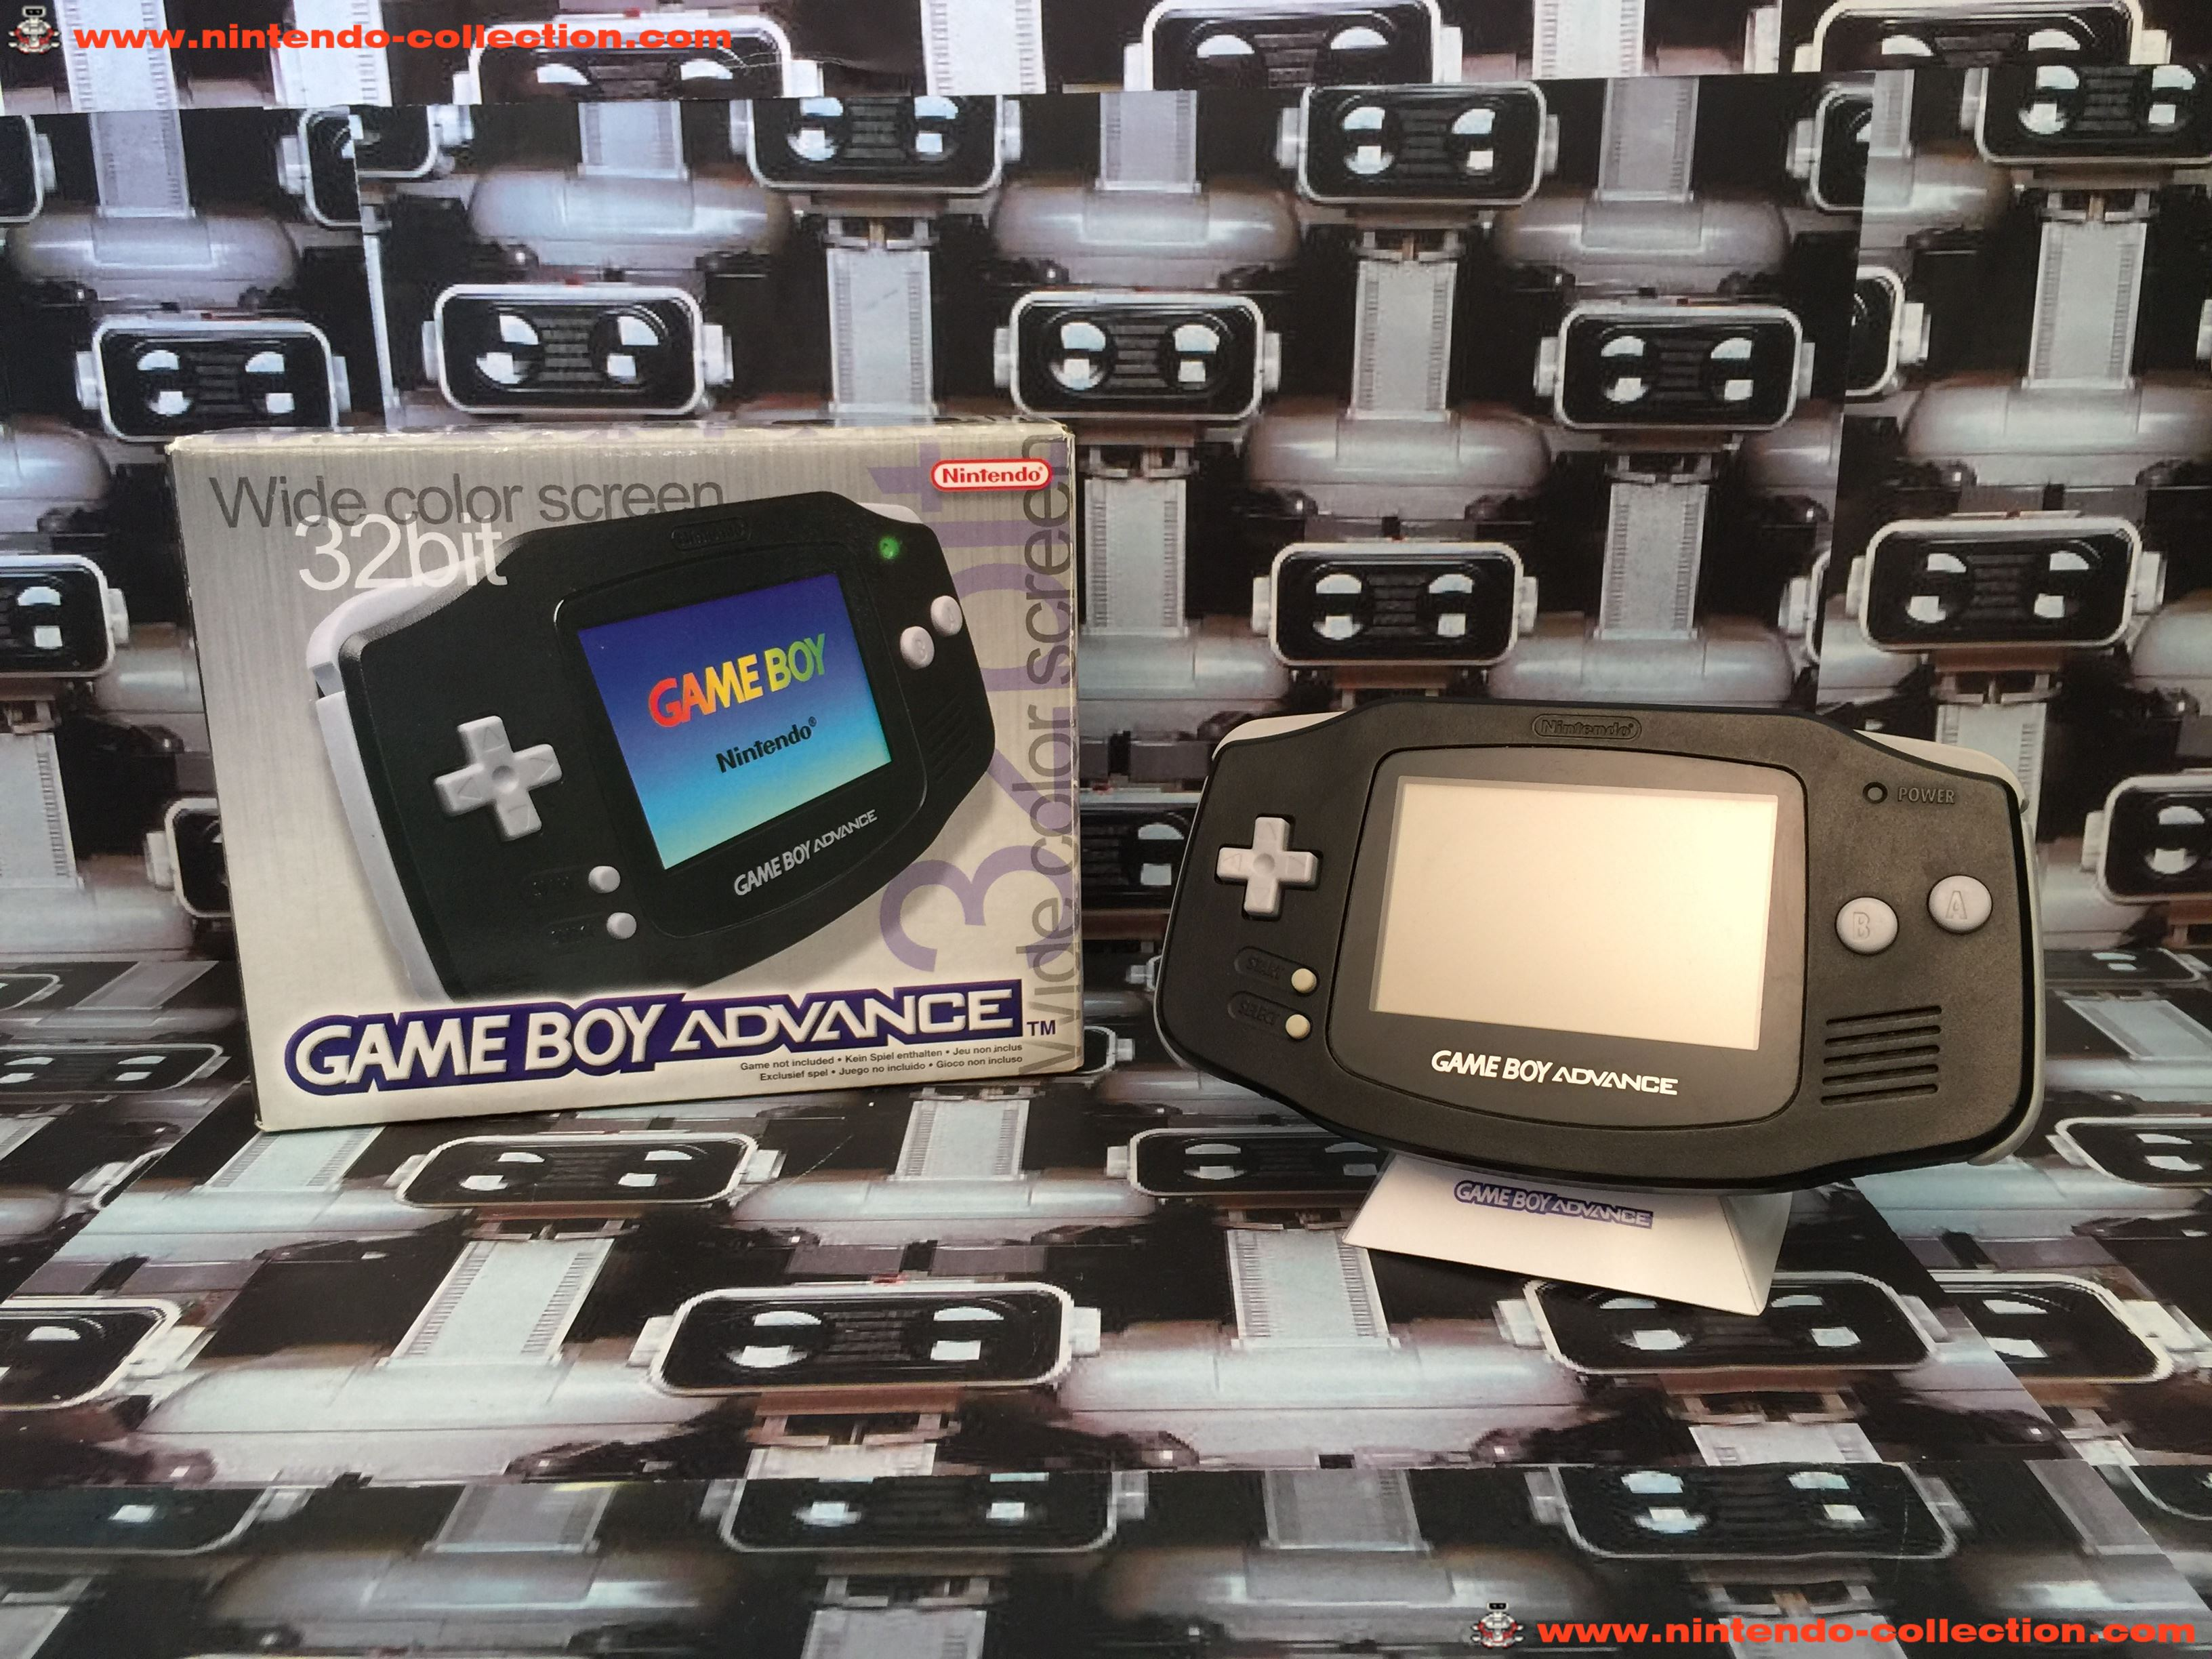 www.nintendo-collection.com - Gameboy Advance GBA Black Noir european europeenne